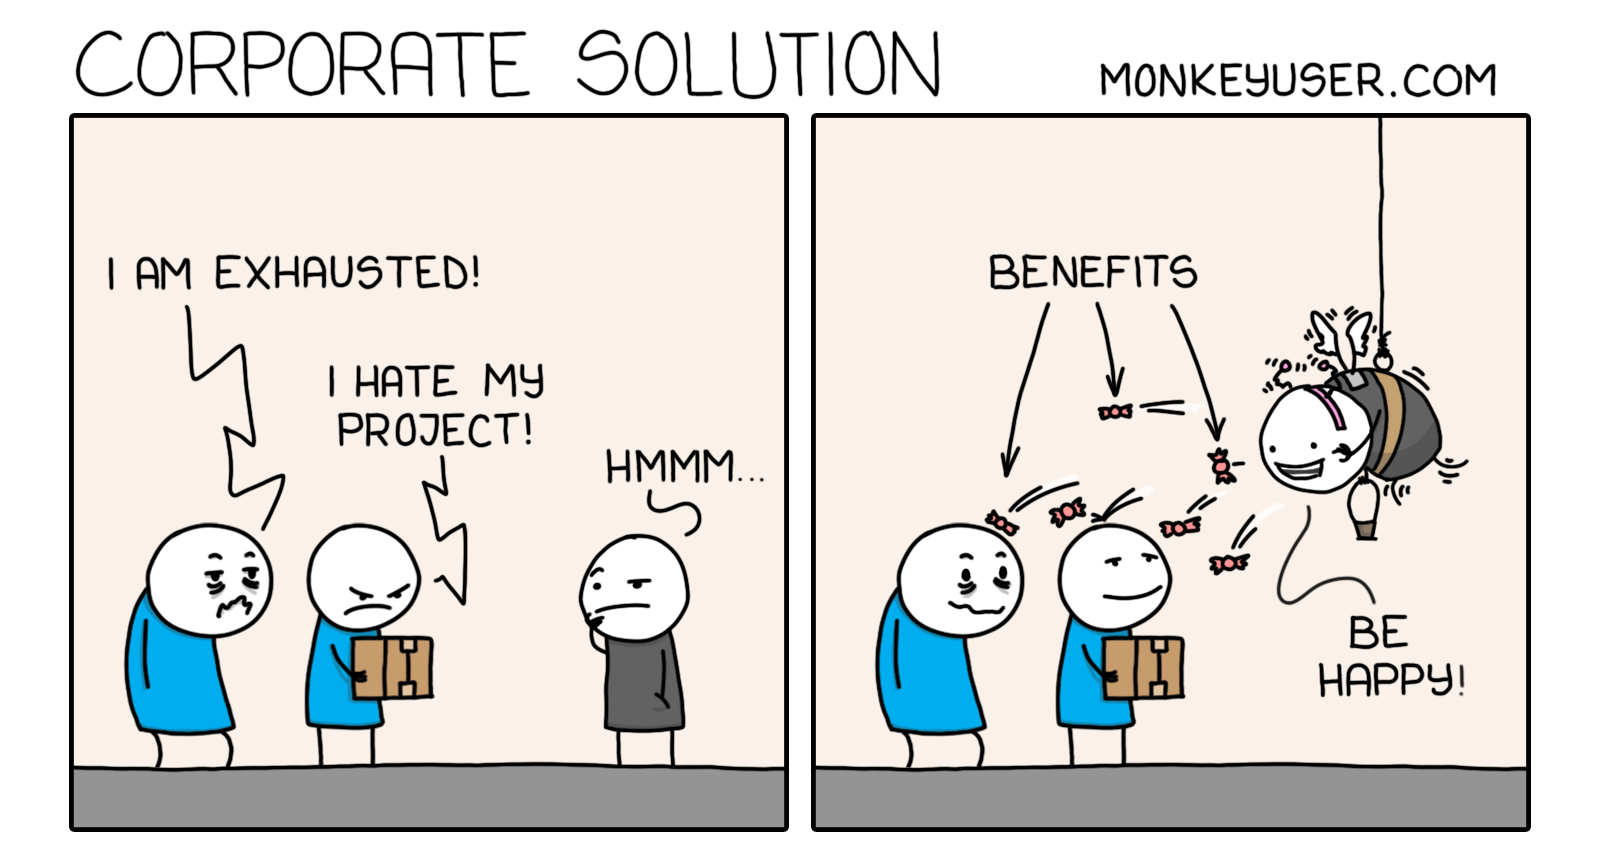 Corporate Solution